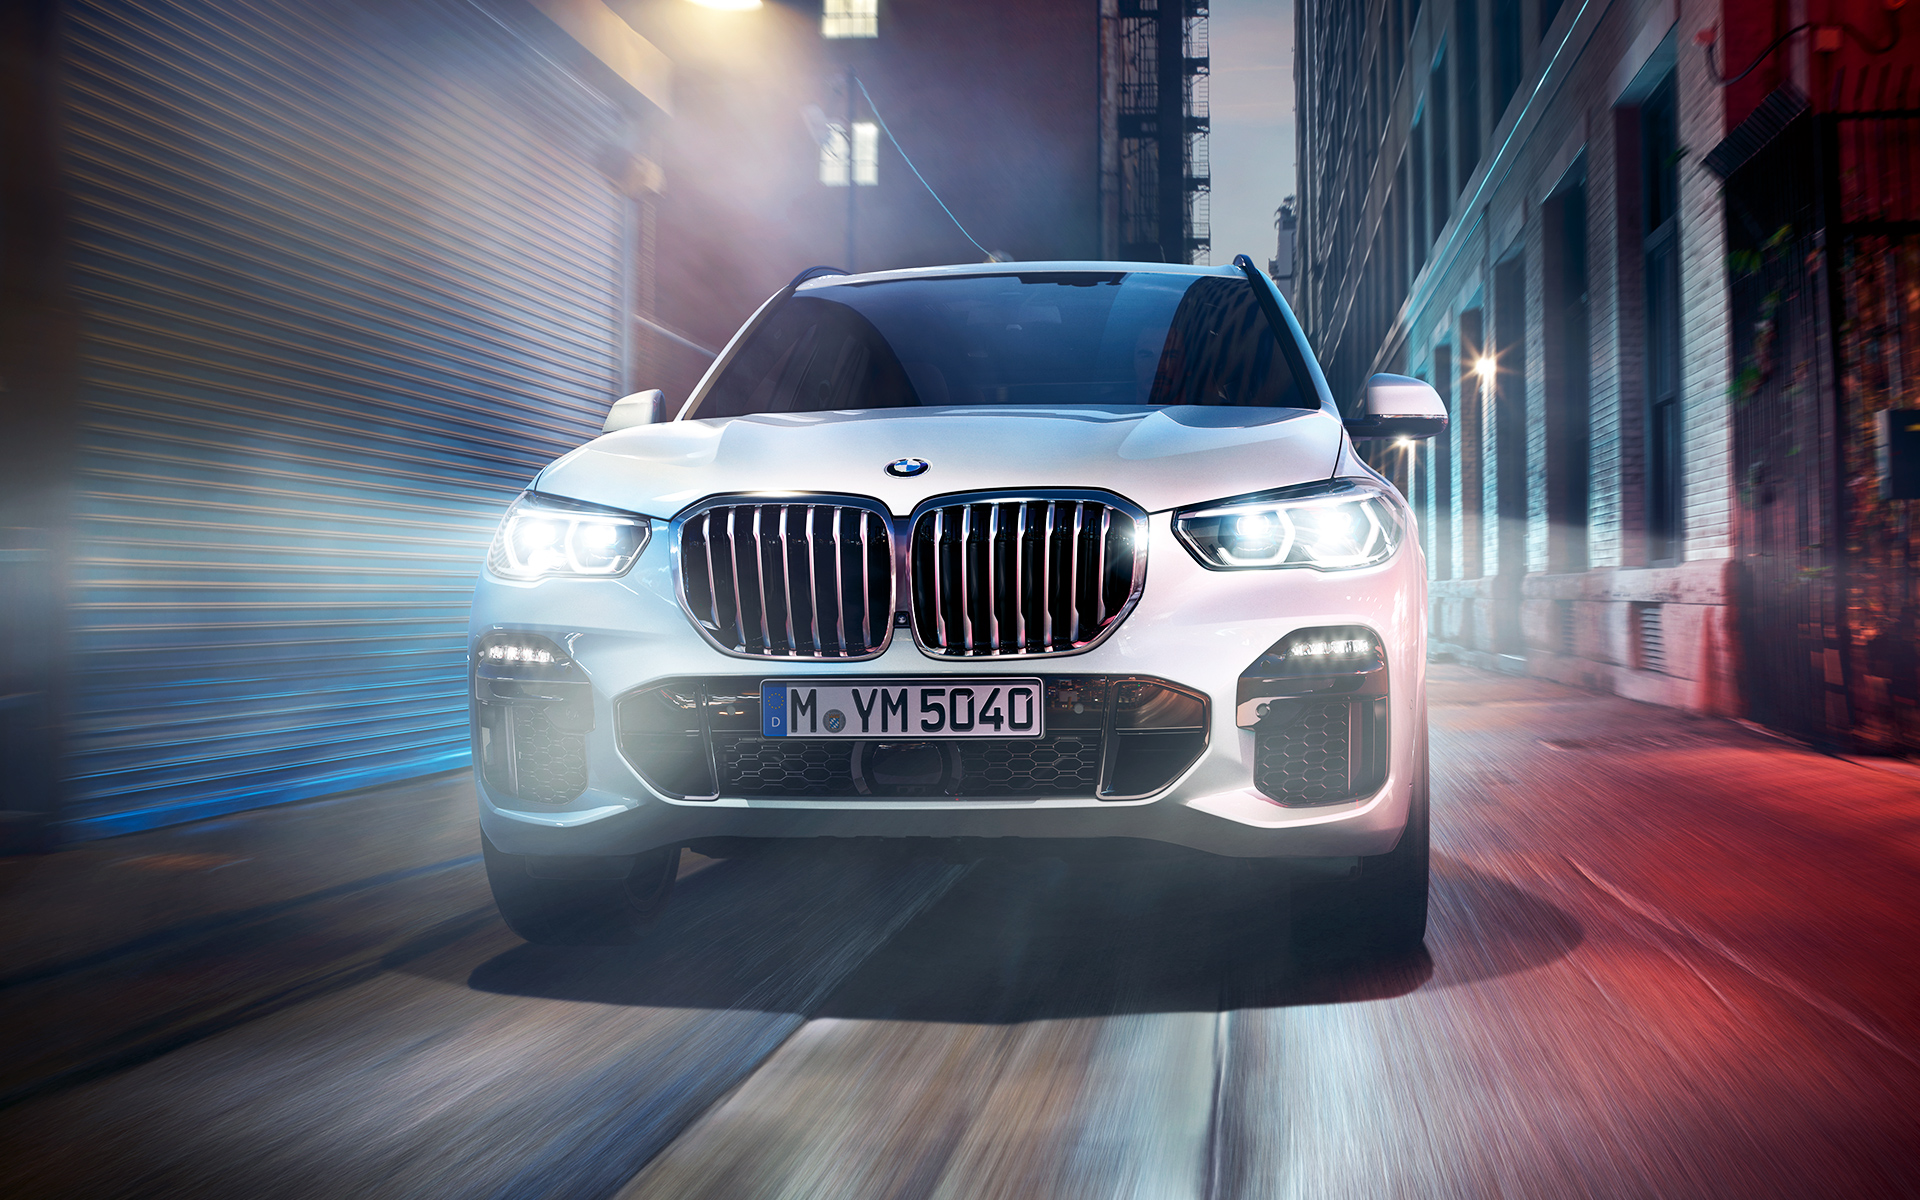 The BMW X5 on a street in the city at night